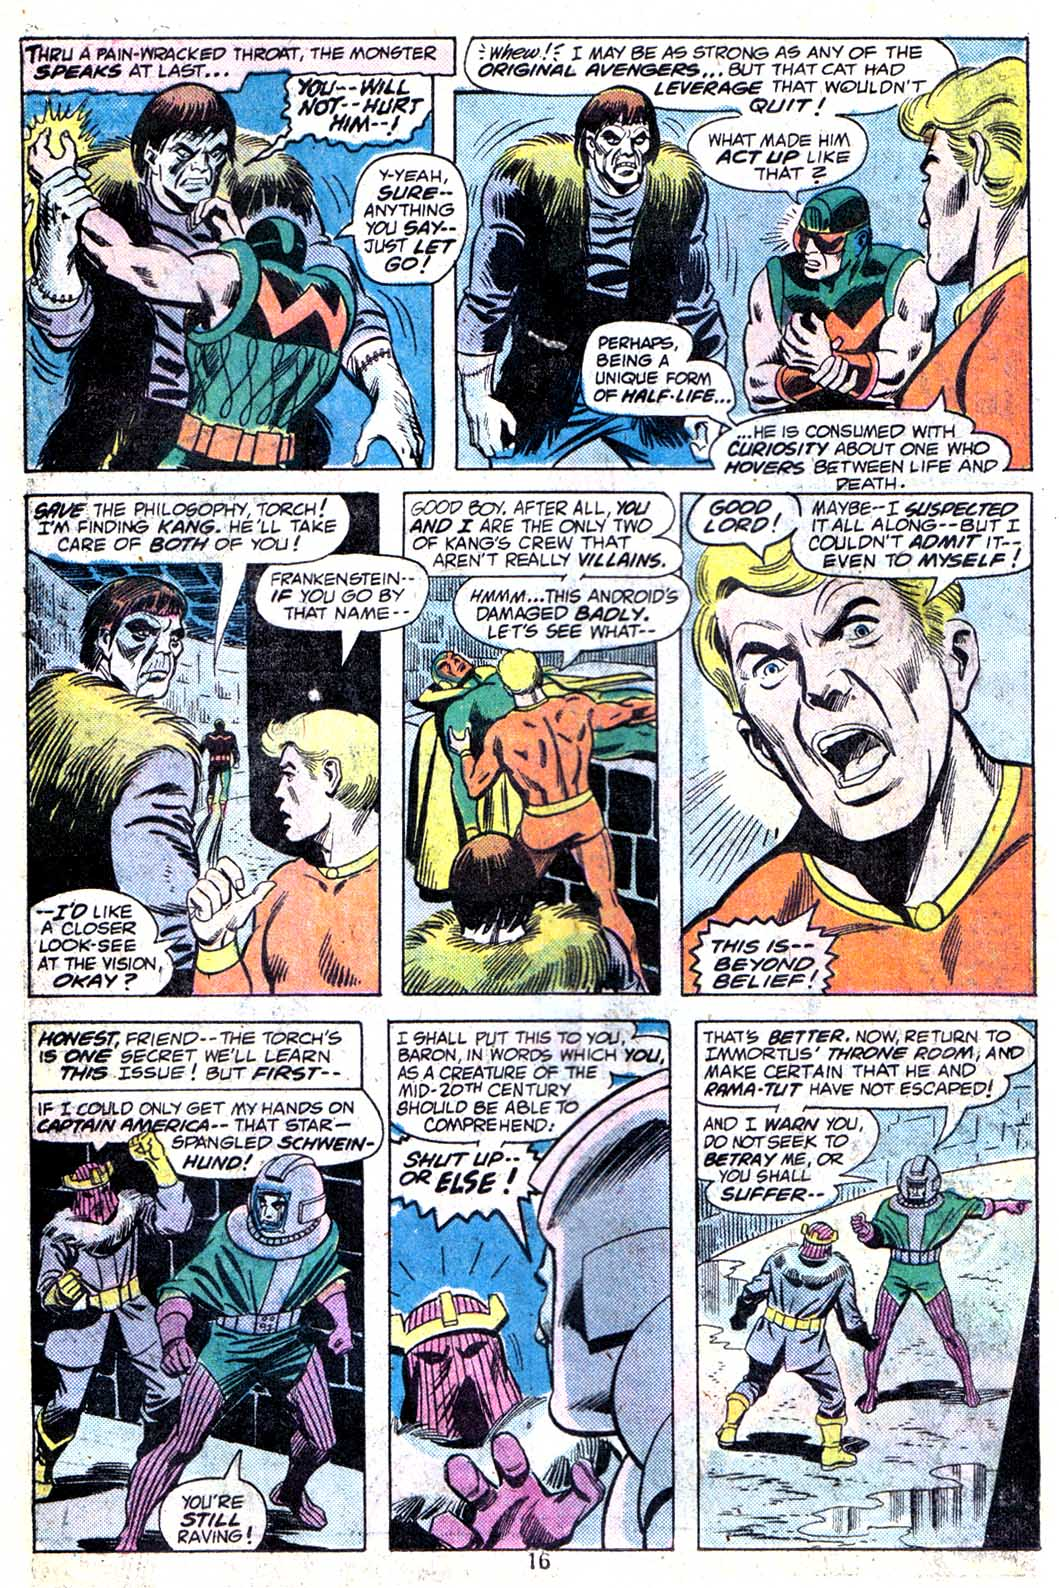 Giant-Size Avengers (1974) issue 3 - Page 18